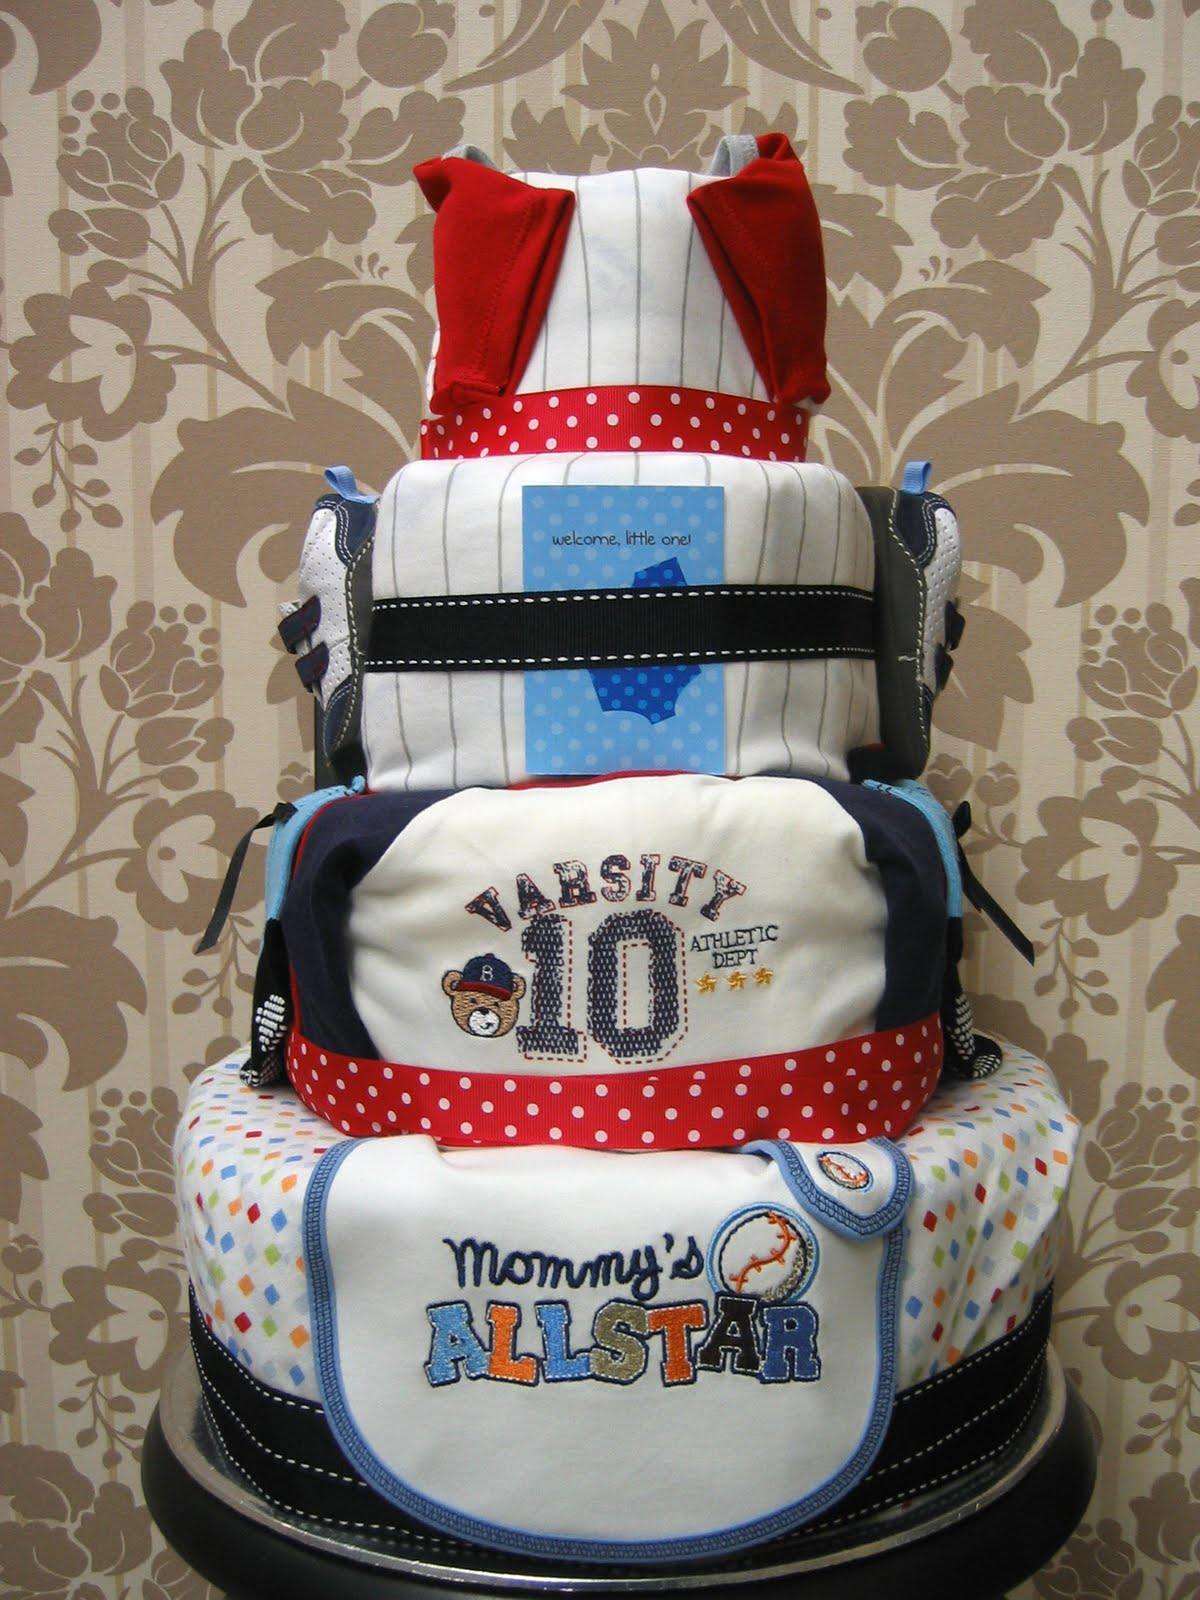 Baby Dee Diaper Cakes Baseball League Diaper Cake